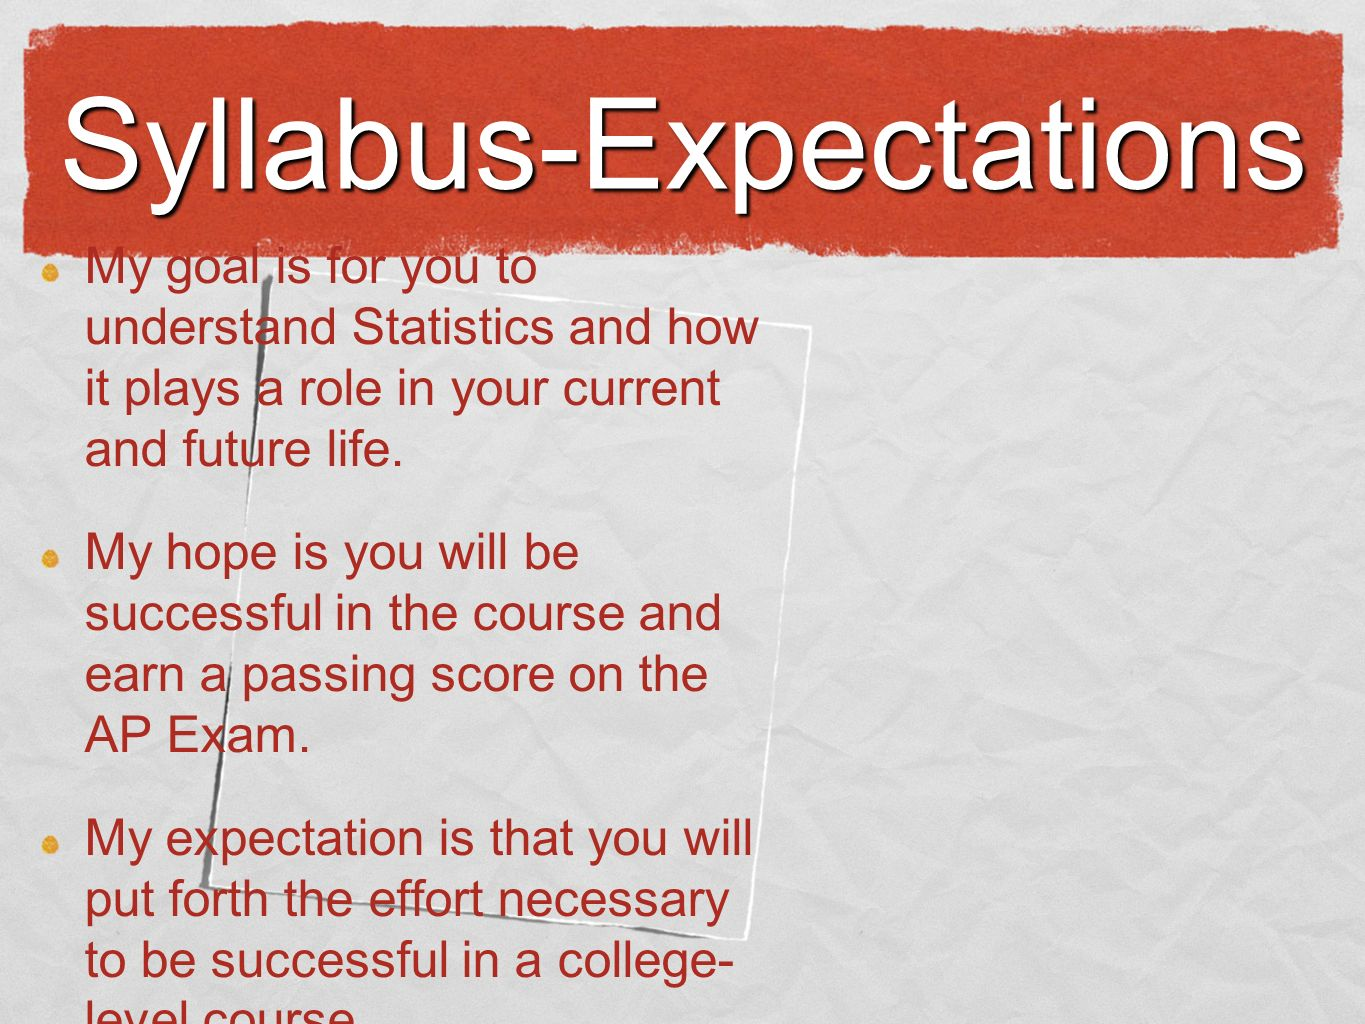 Syllabus-Expectations My goal is for you to understand Statistics and how it plays a role in your current and future life.